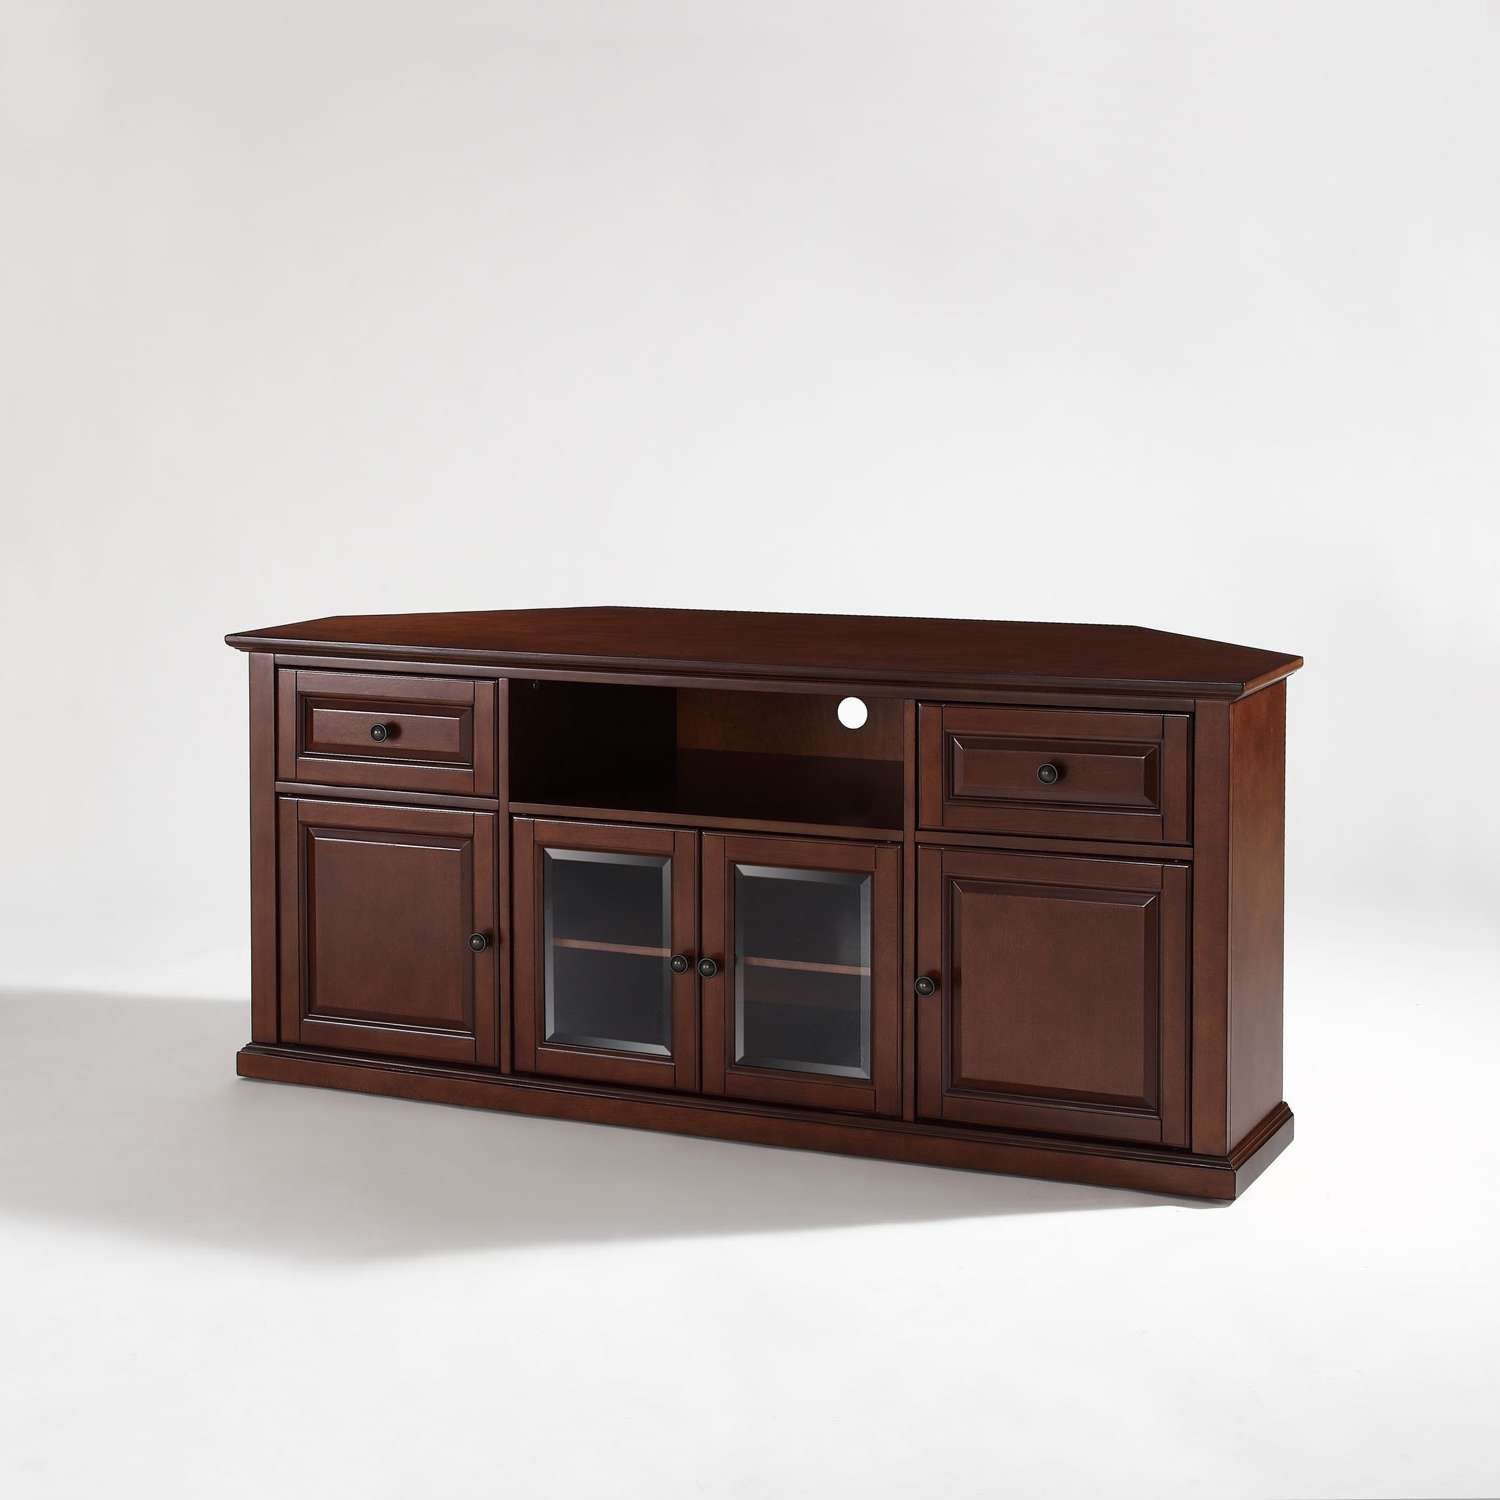 60 Inch Corner Tv Stand In Vintage Mahogany Crosley Furniture Regarding Corner Tv Stands (Gallery 5 of 15)